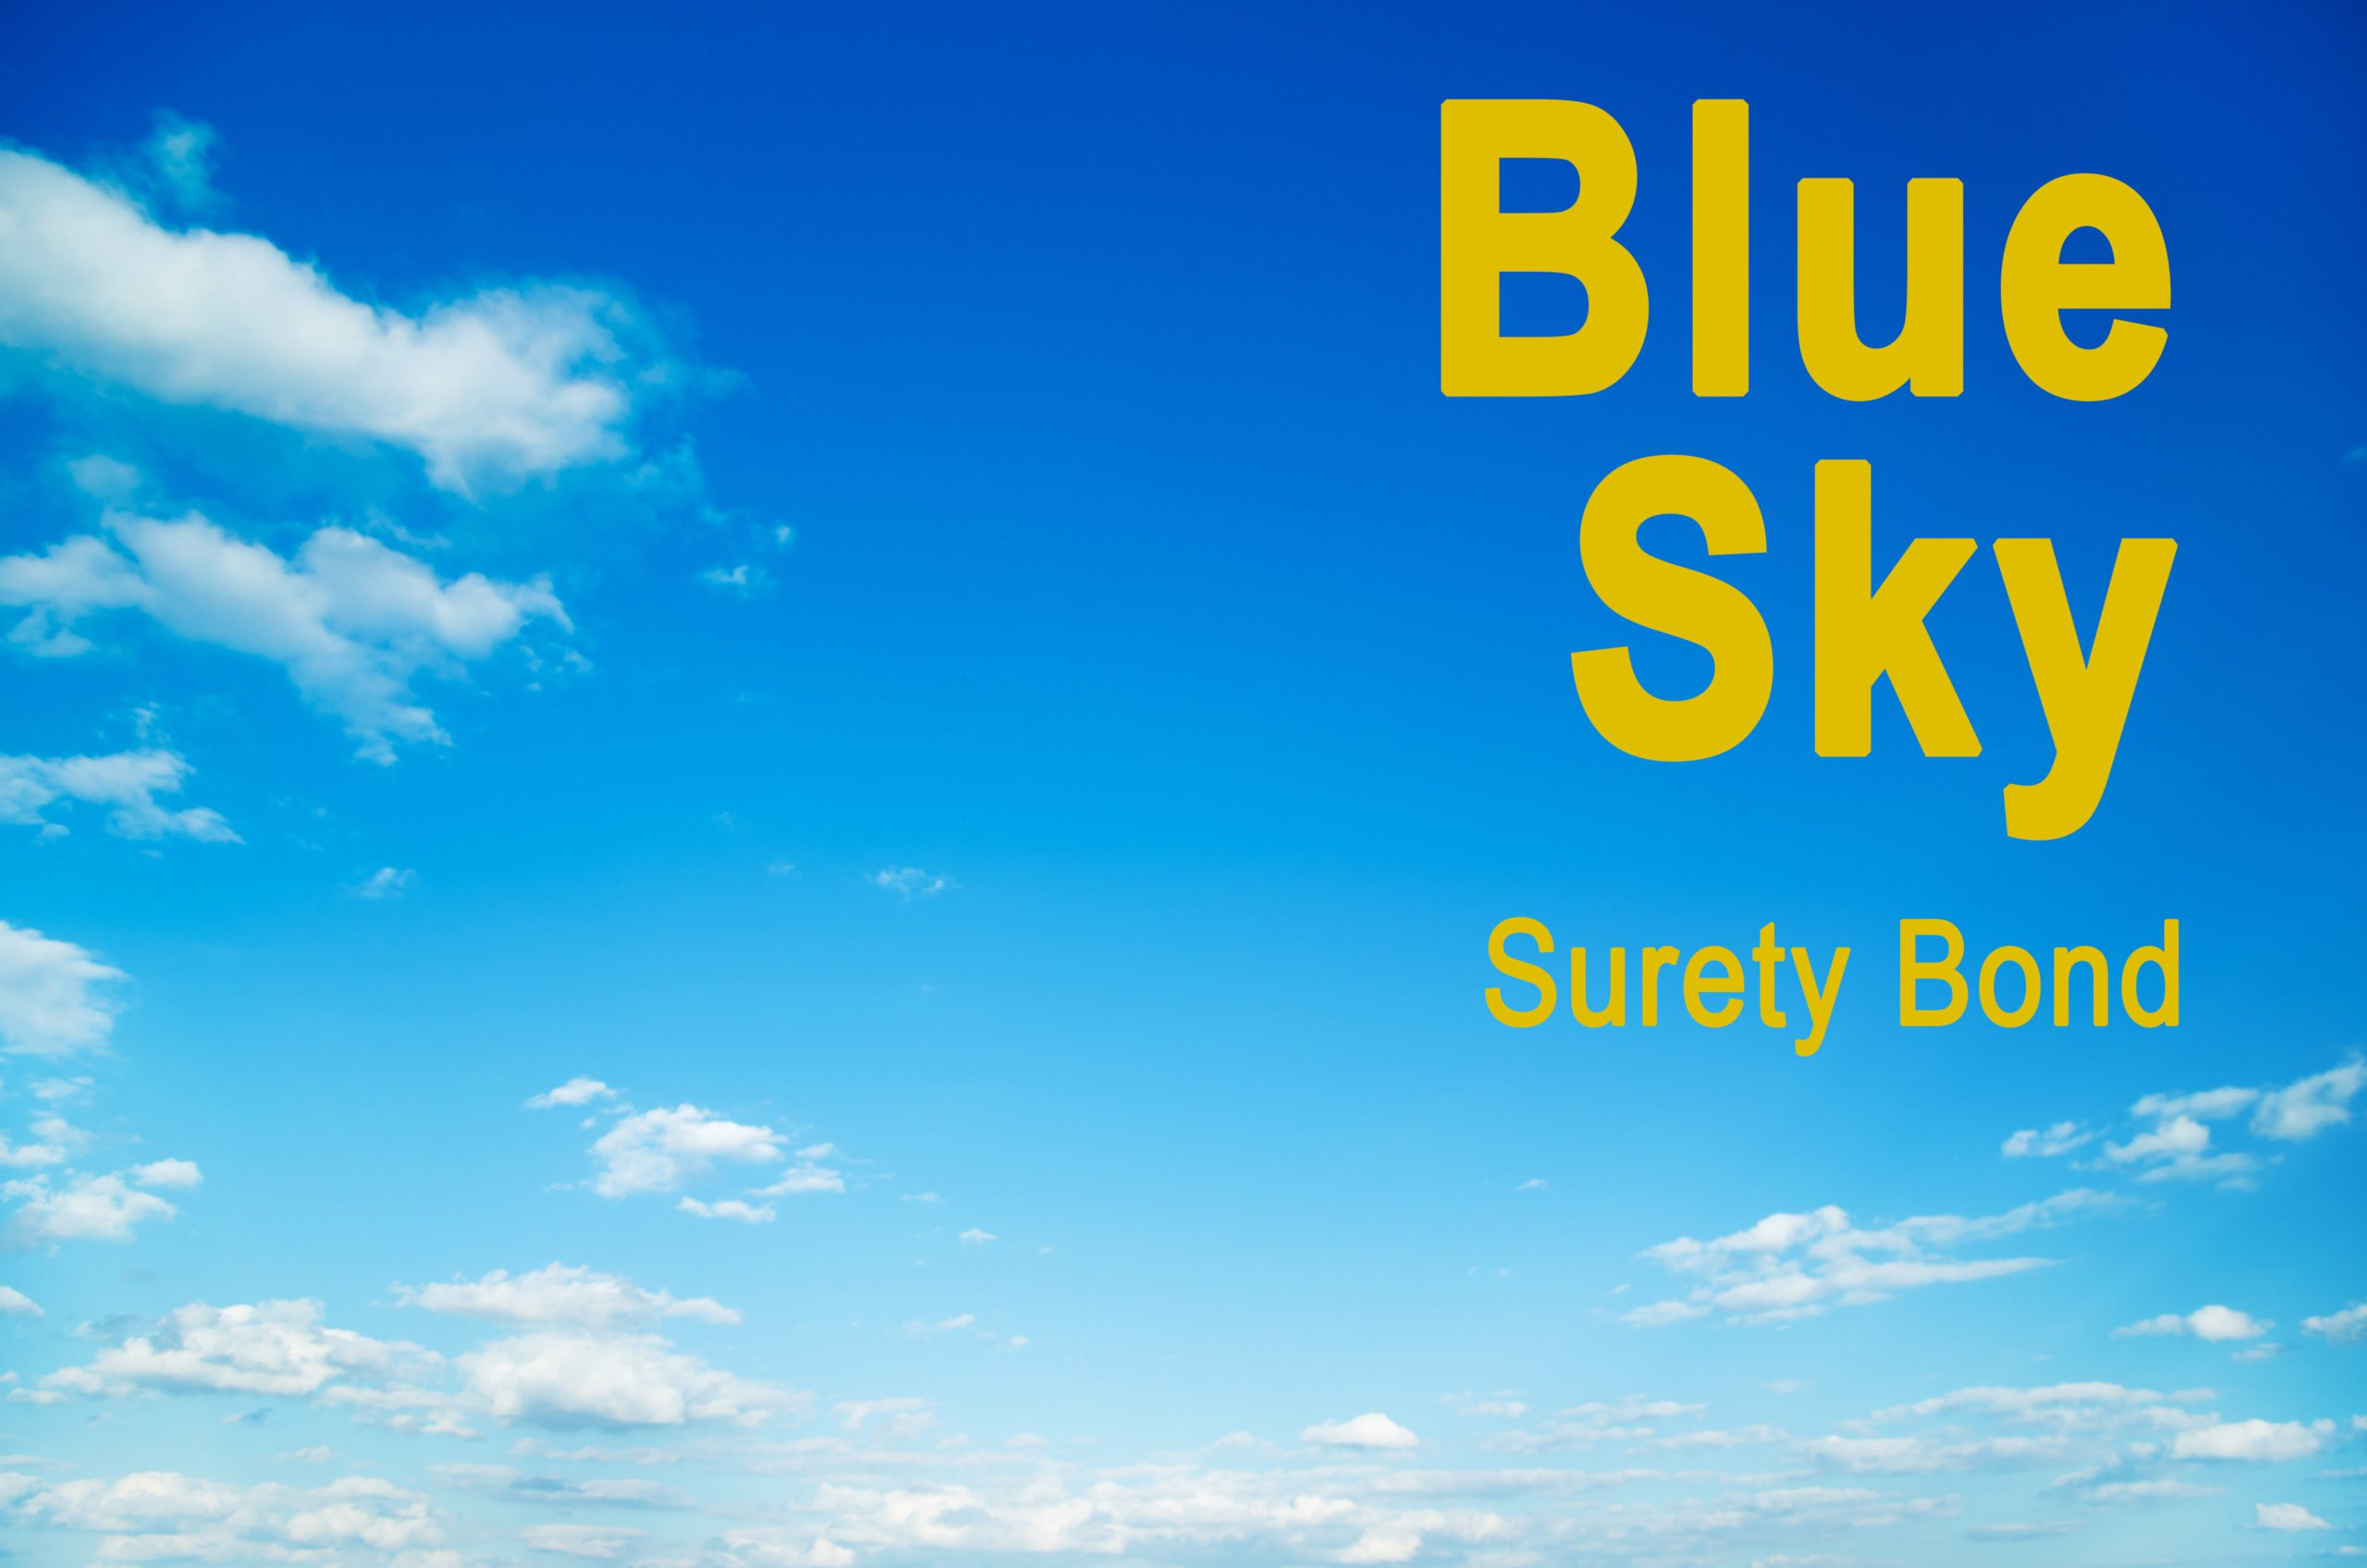 A blue sky with words blue sky surety bond